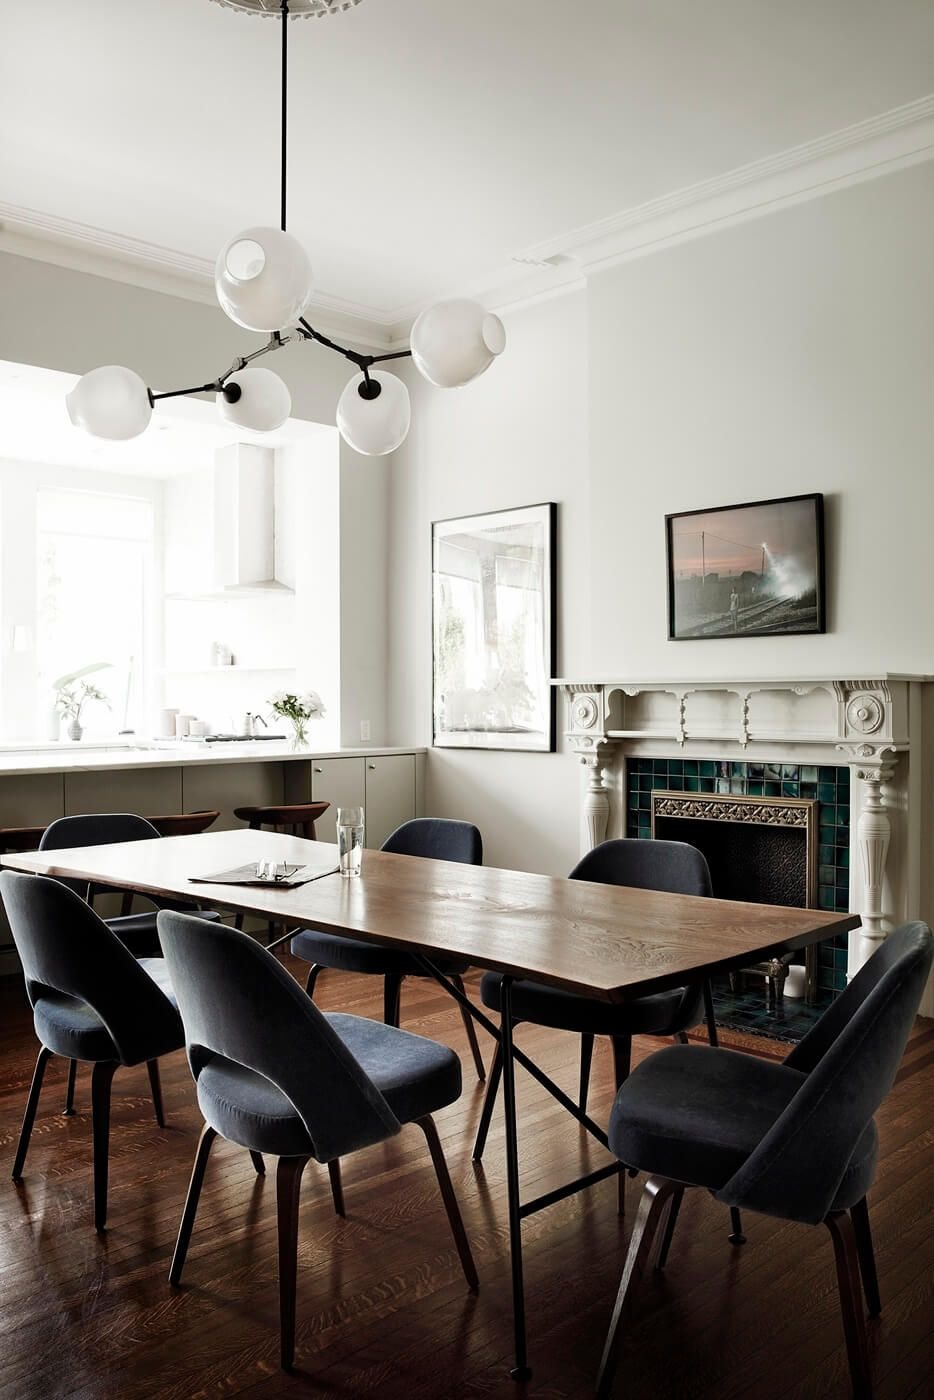 High End Renovation Of A Classic Brownstone Gently Modernized By Bangia Agostinho Architecture With Luxurious Furnishings And Finishes Shaker Studio